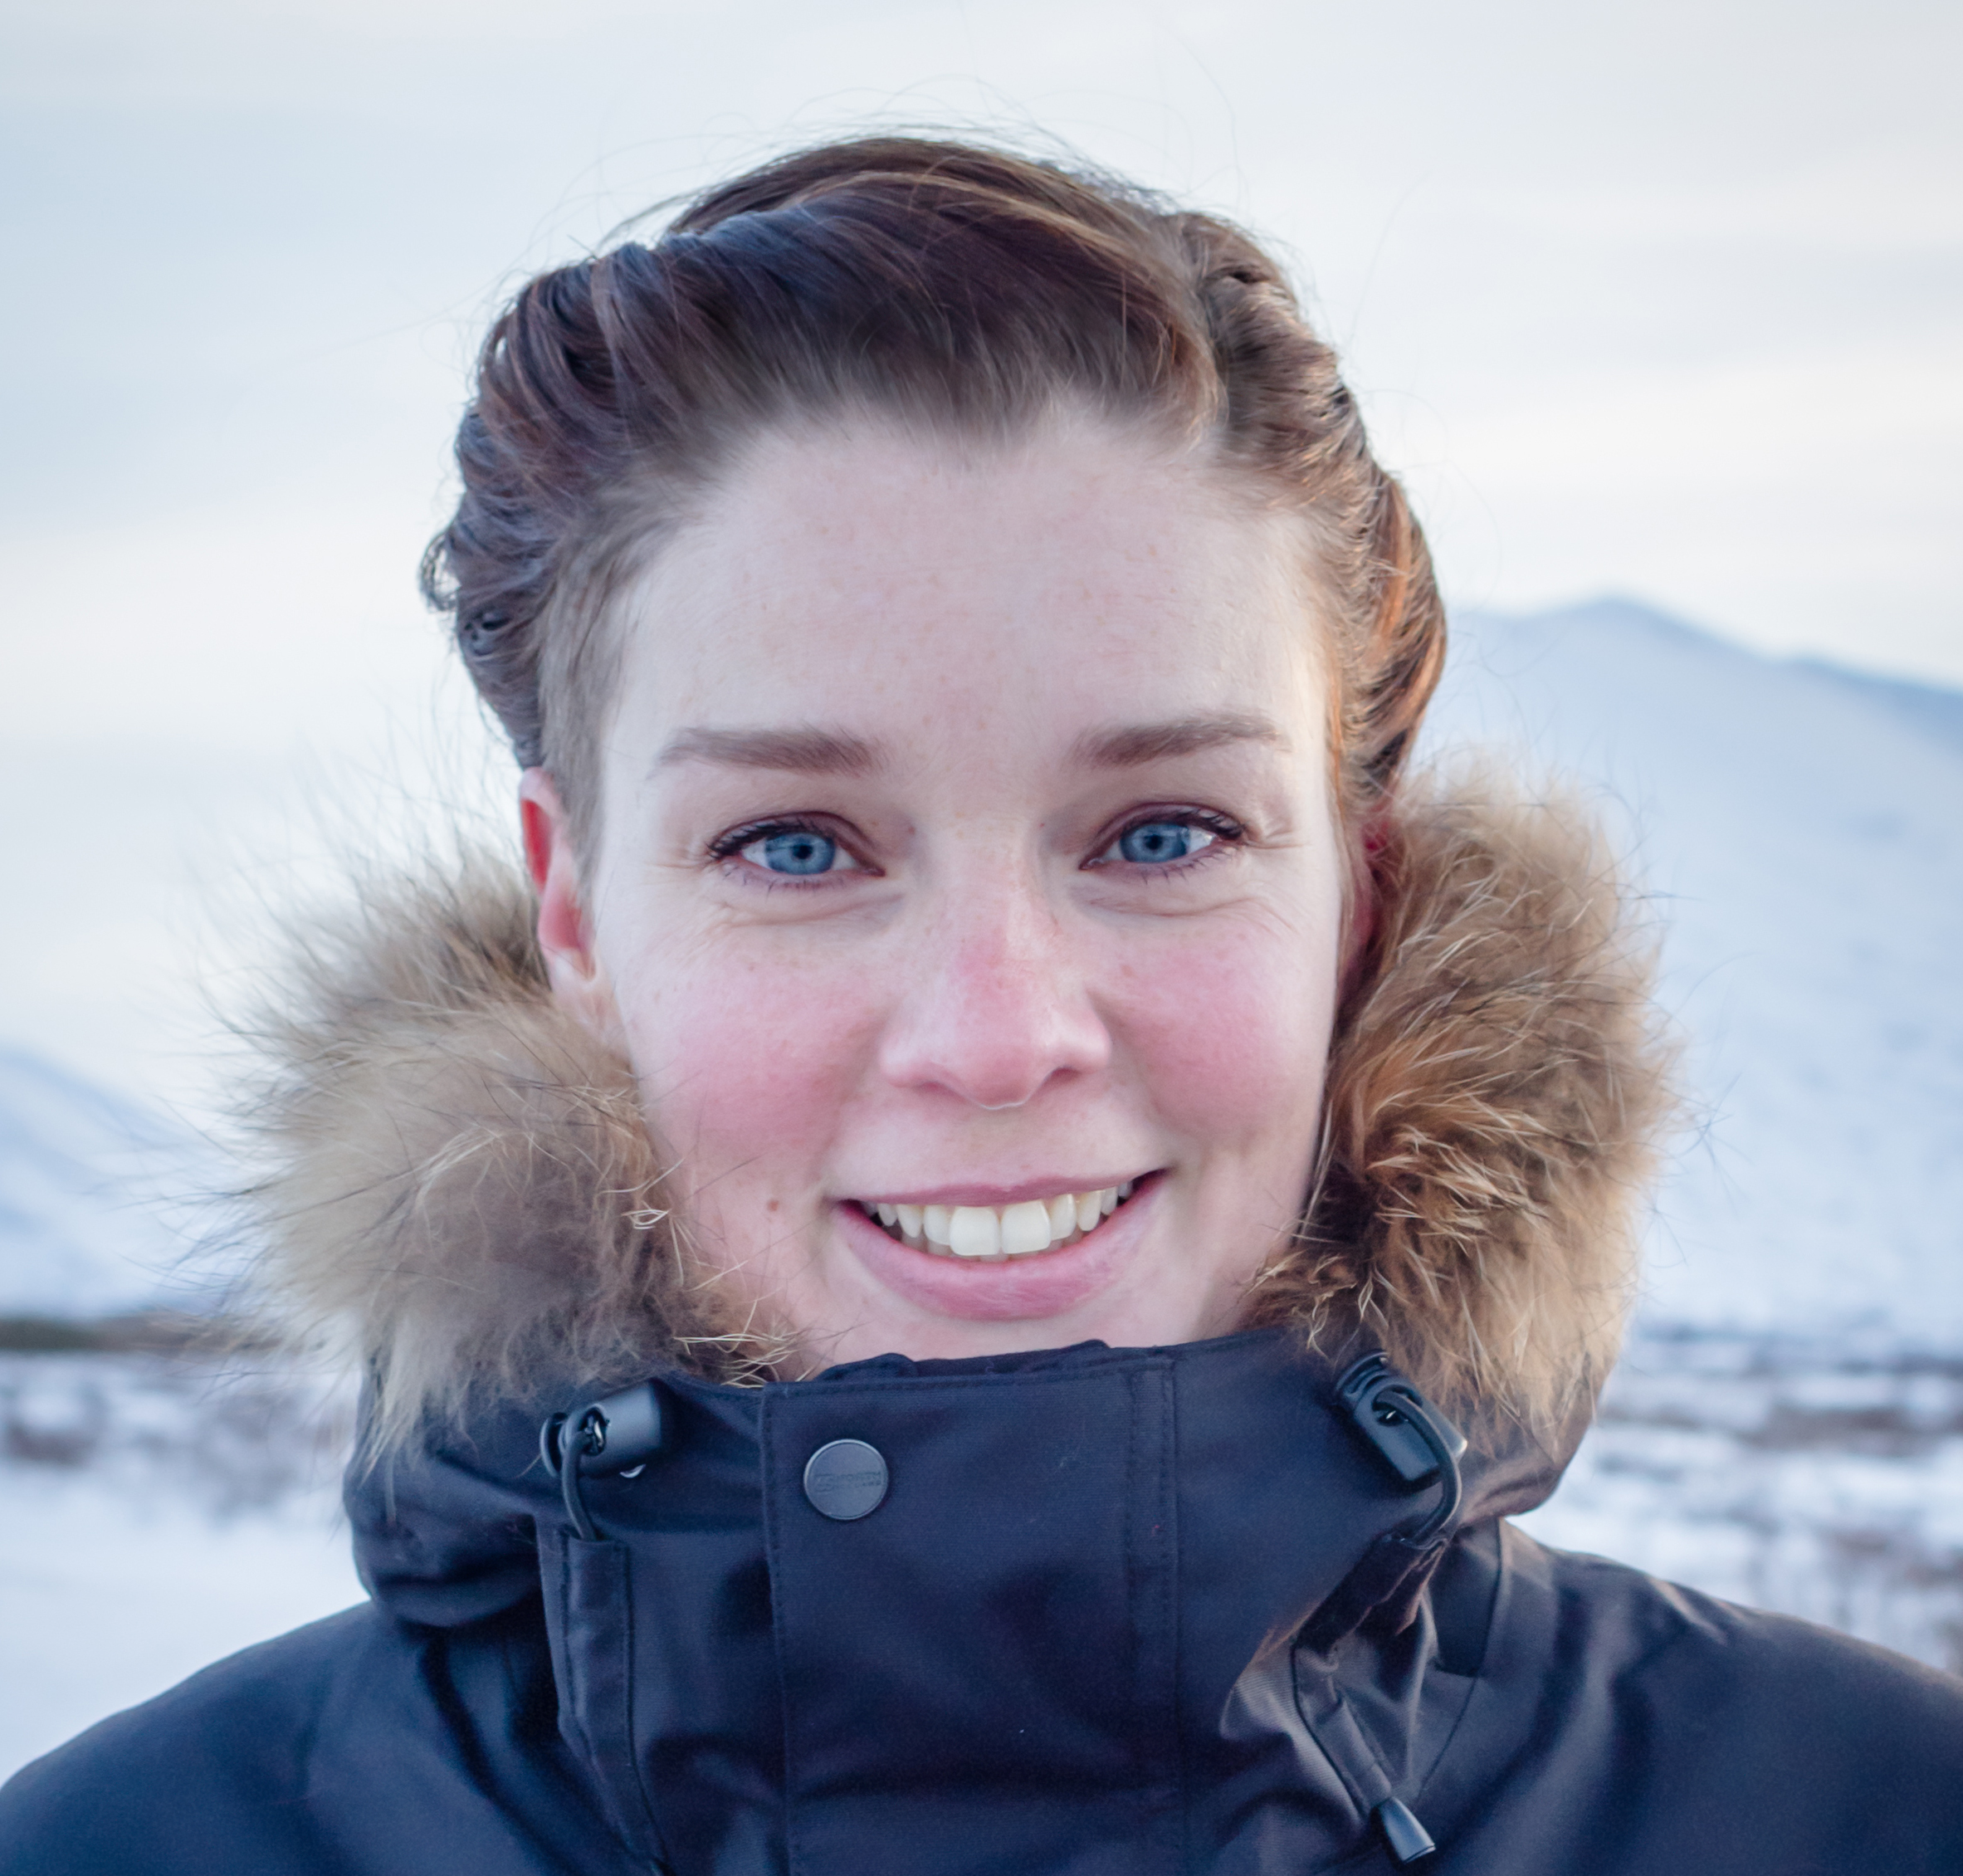 Magnfridur Petursdottir, Marketing Director, Travel East